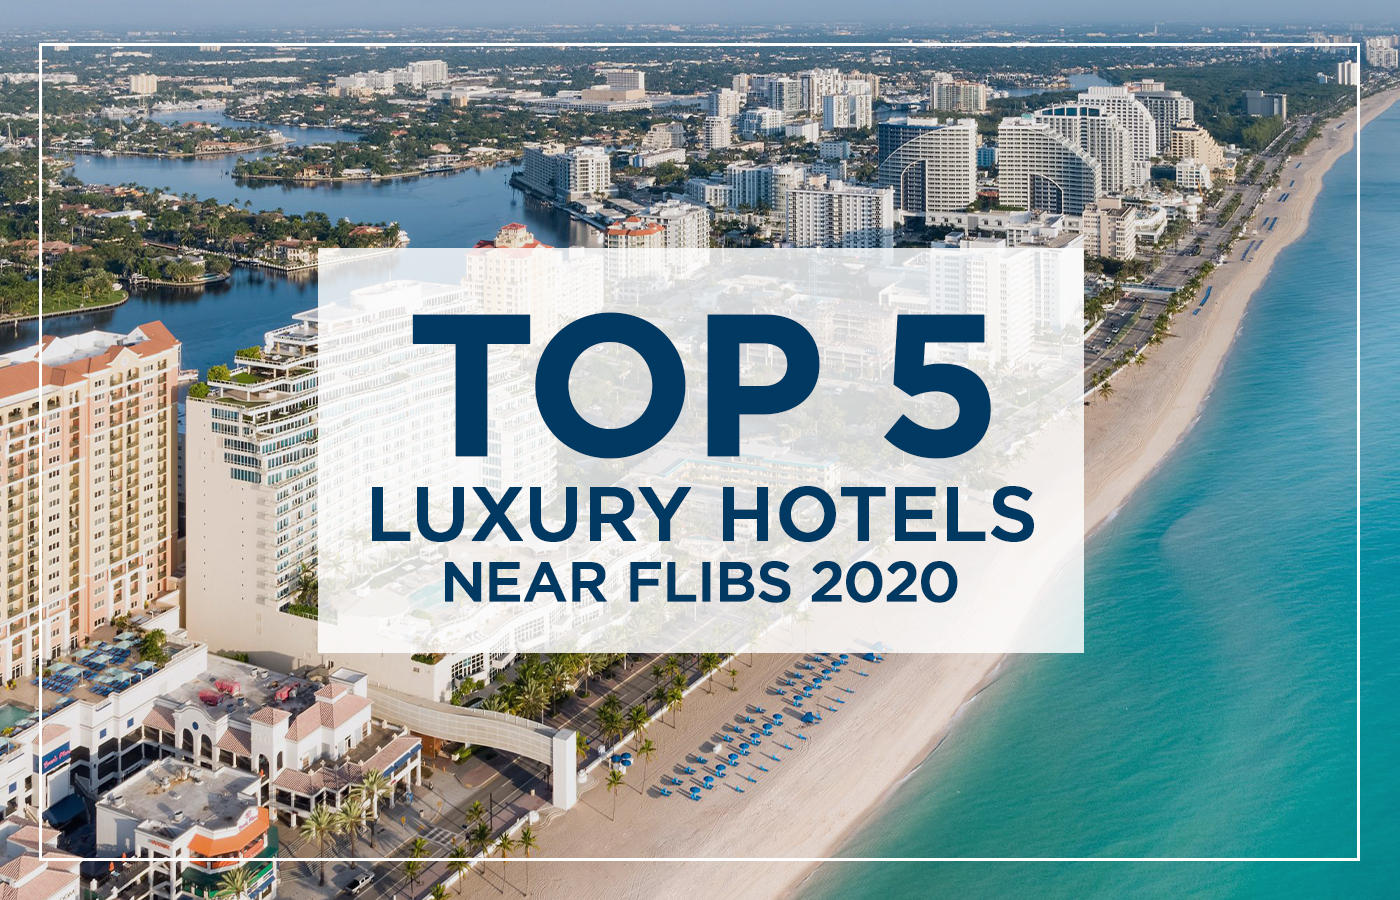 Top 5 Luxury Hotels Near FLIBS 2020 [Boat Show Guide]